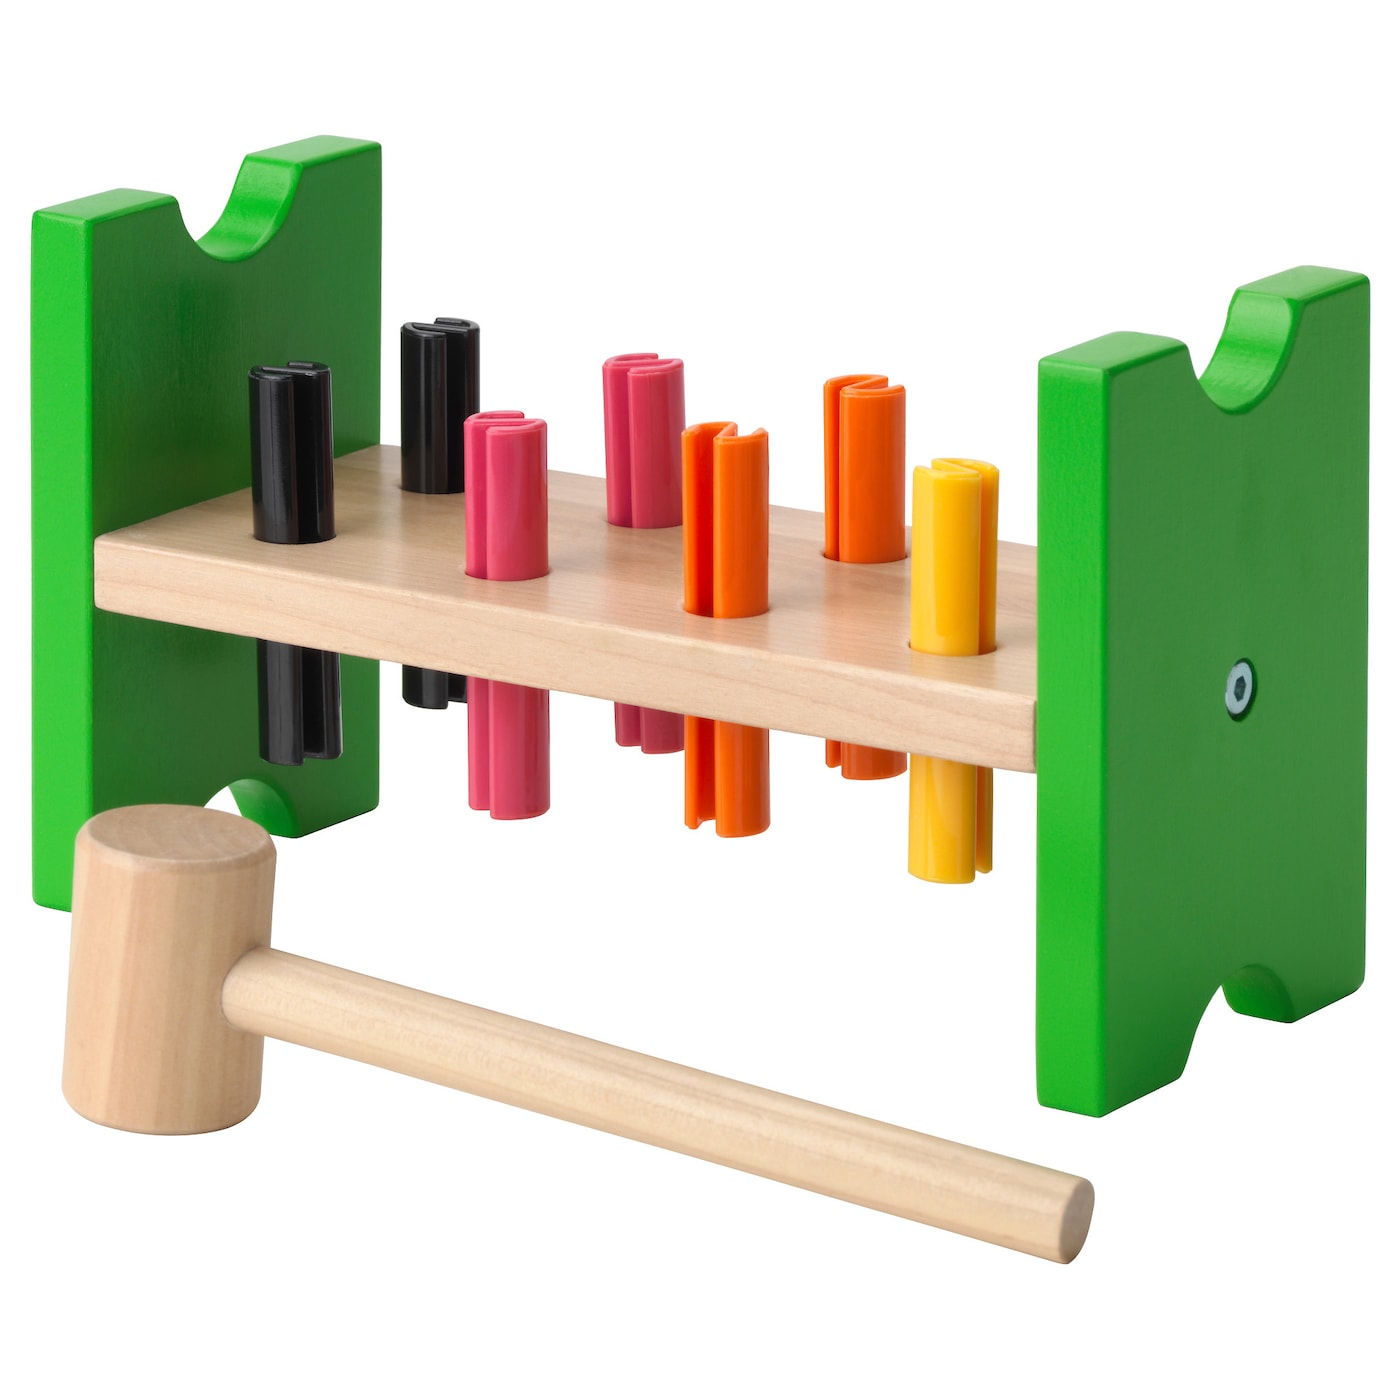 b4a2a2b8d554b IKEA MULA toy hammering block Helps the child develop fine motor skills and  hand eye